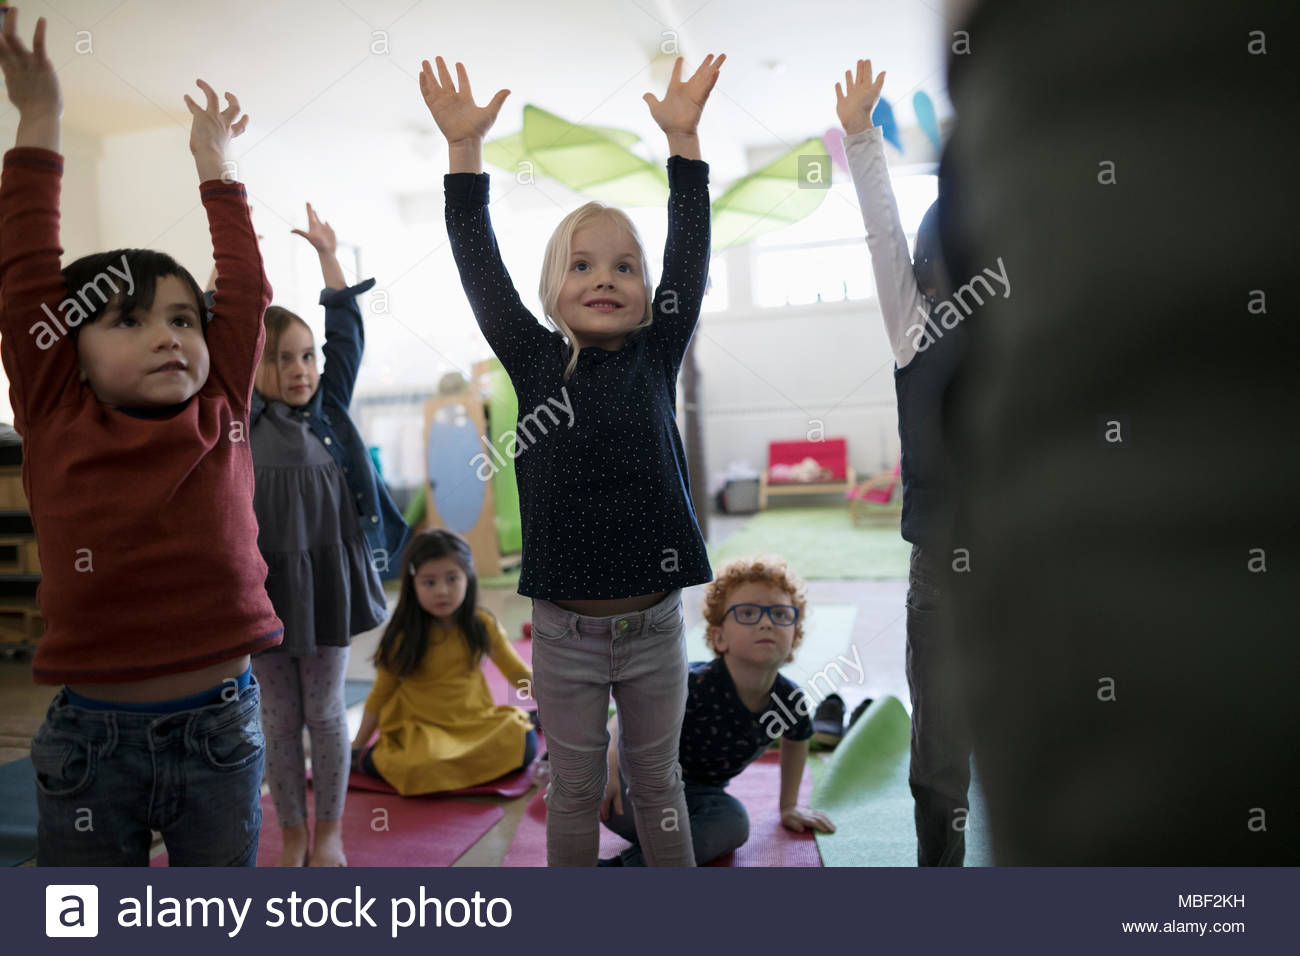 Preschool students practicing yoga with arms raised in classroom - Stock Image